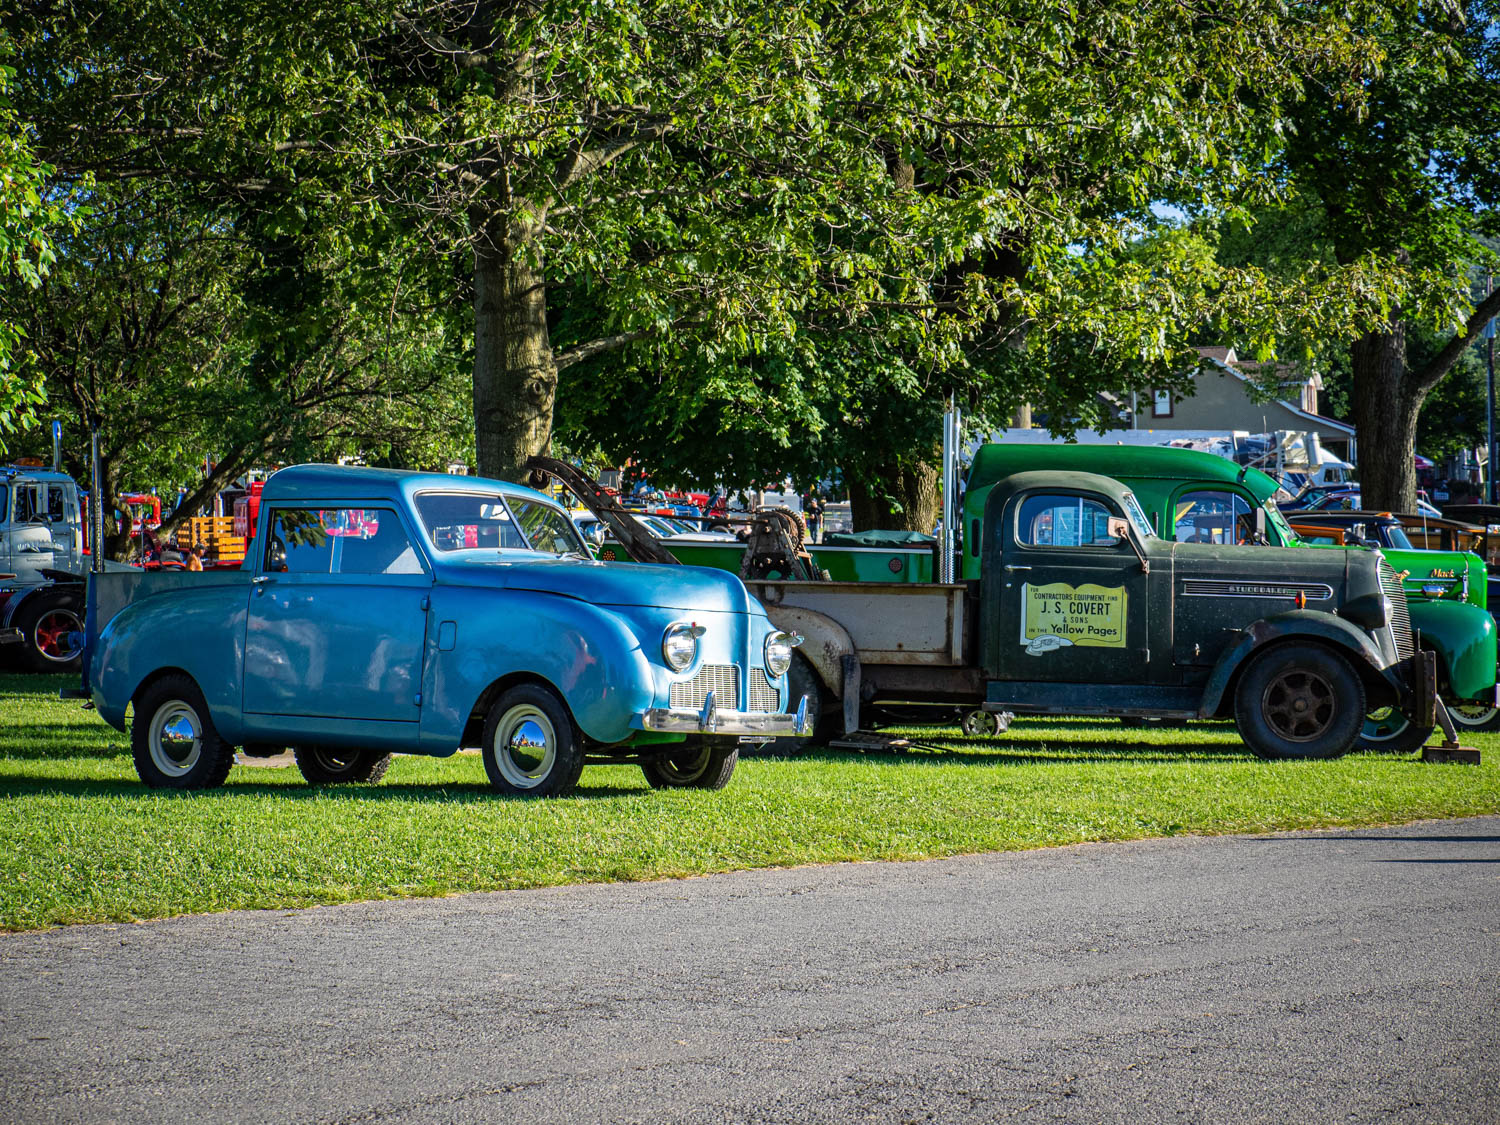 Not everything in Macungie was massive. This tiny Crosley pickup was the smallest truck in attendance.